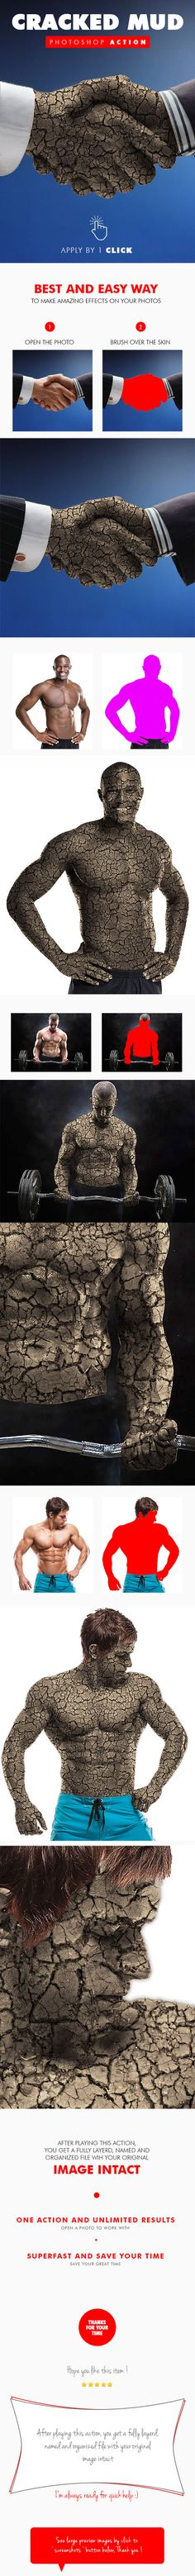 Cracked Mud #Photoshop Action - #Photo Effects #Actions Download here: https://graphicriver.net/item/cracked-mud-photoshop-action/19614892?ref=alena994